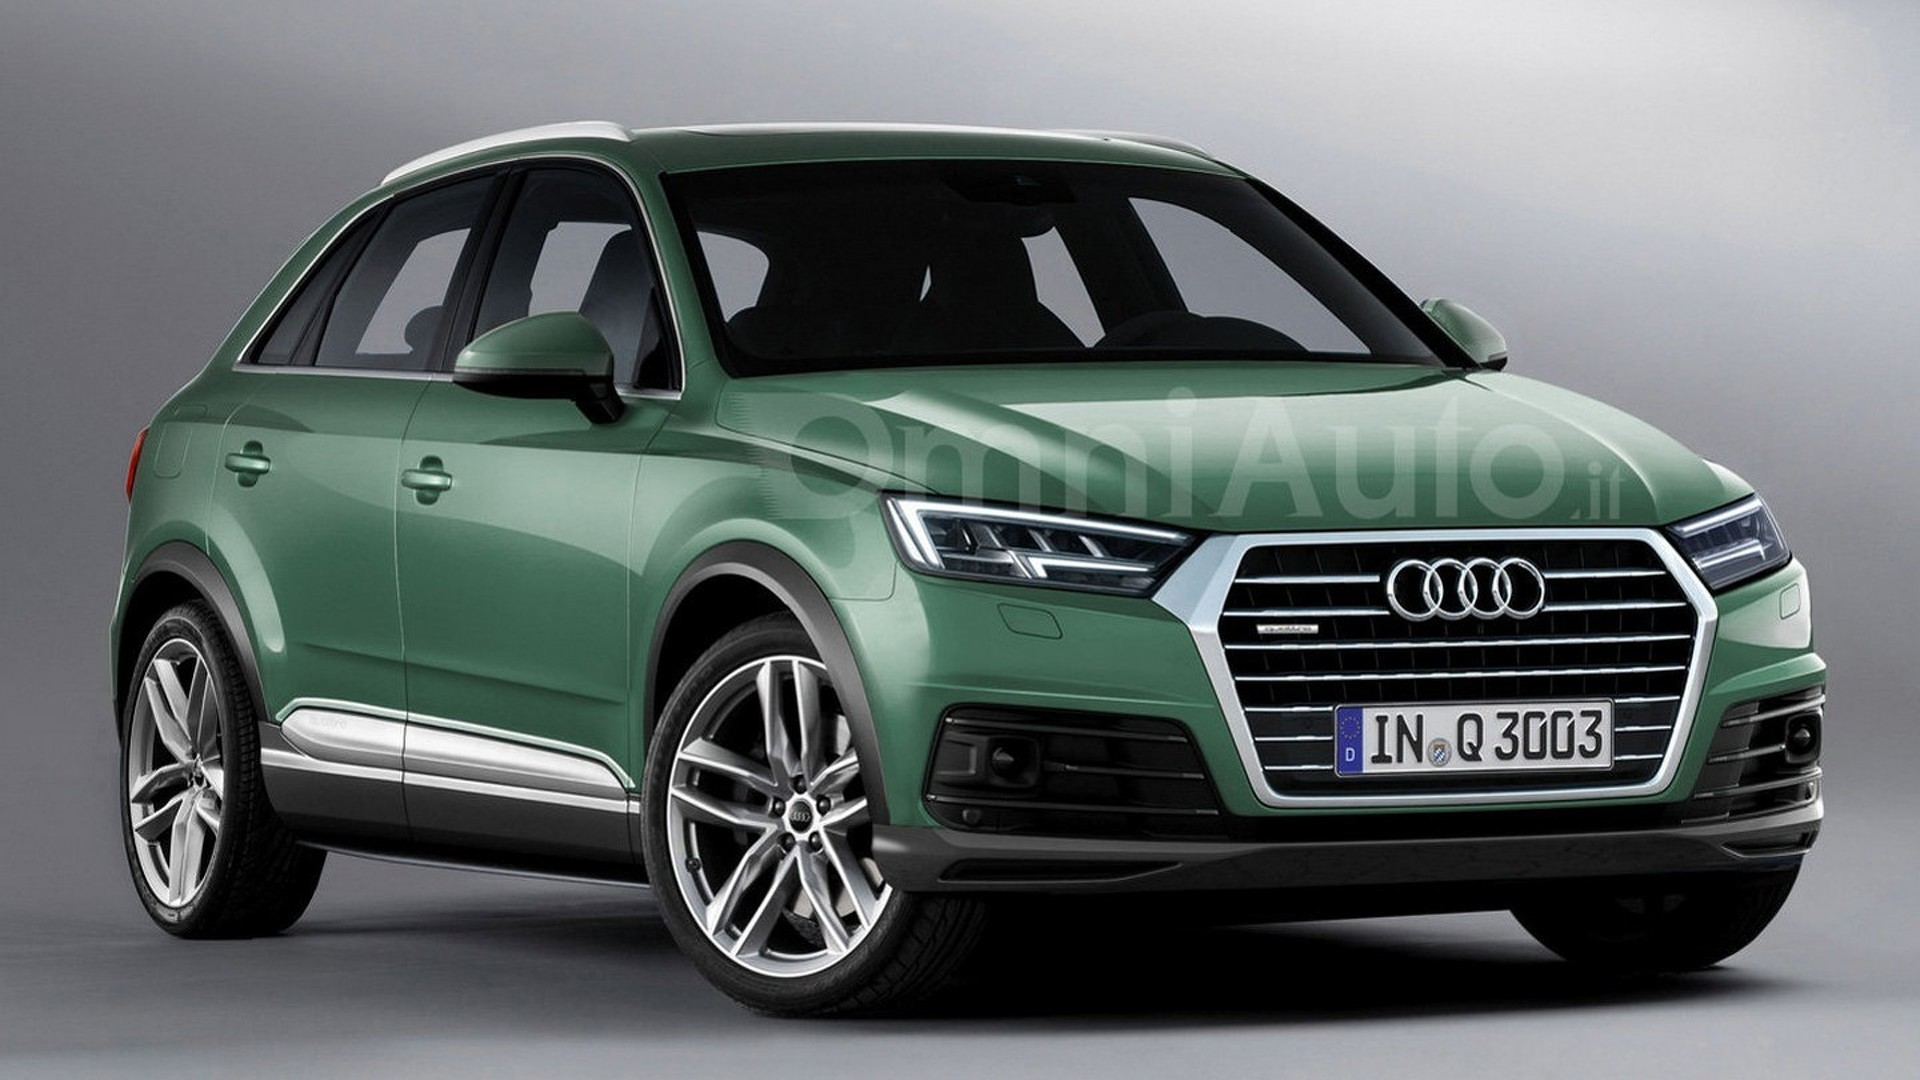 2018 Audi Q3 Review Expected Date Of Arrival >> 2018 Audi Q3 Render Points Towards Predictable Design Evolution